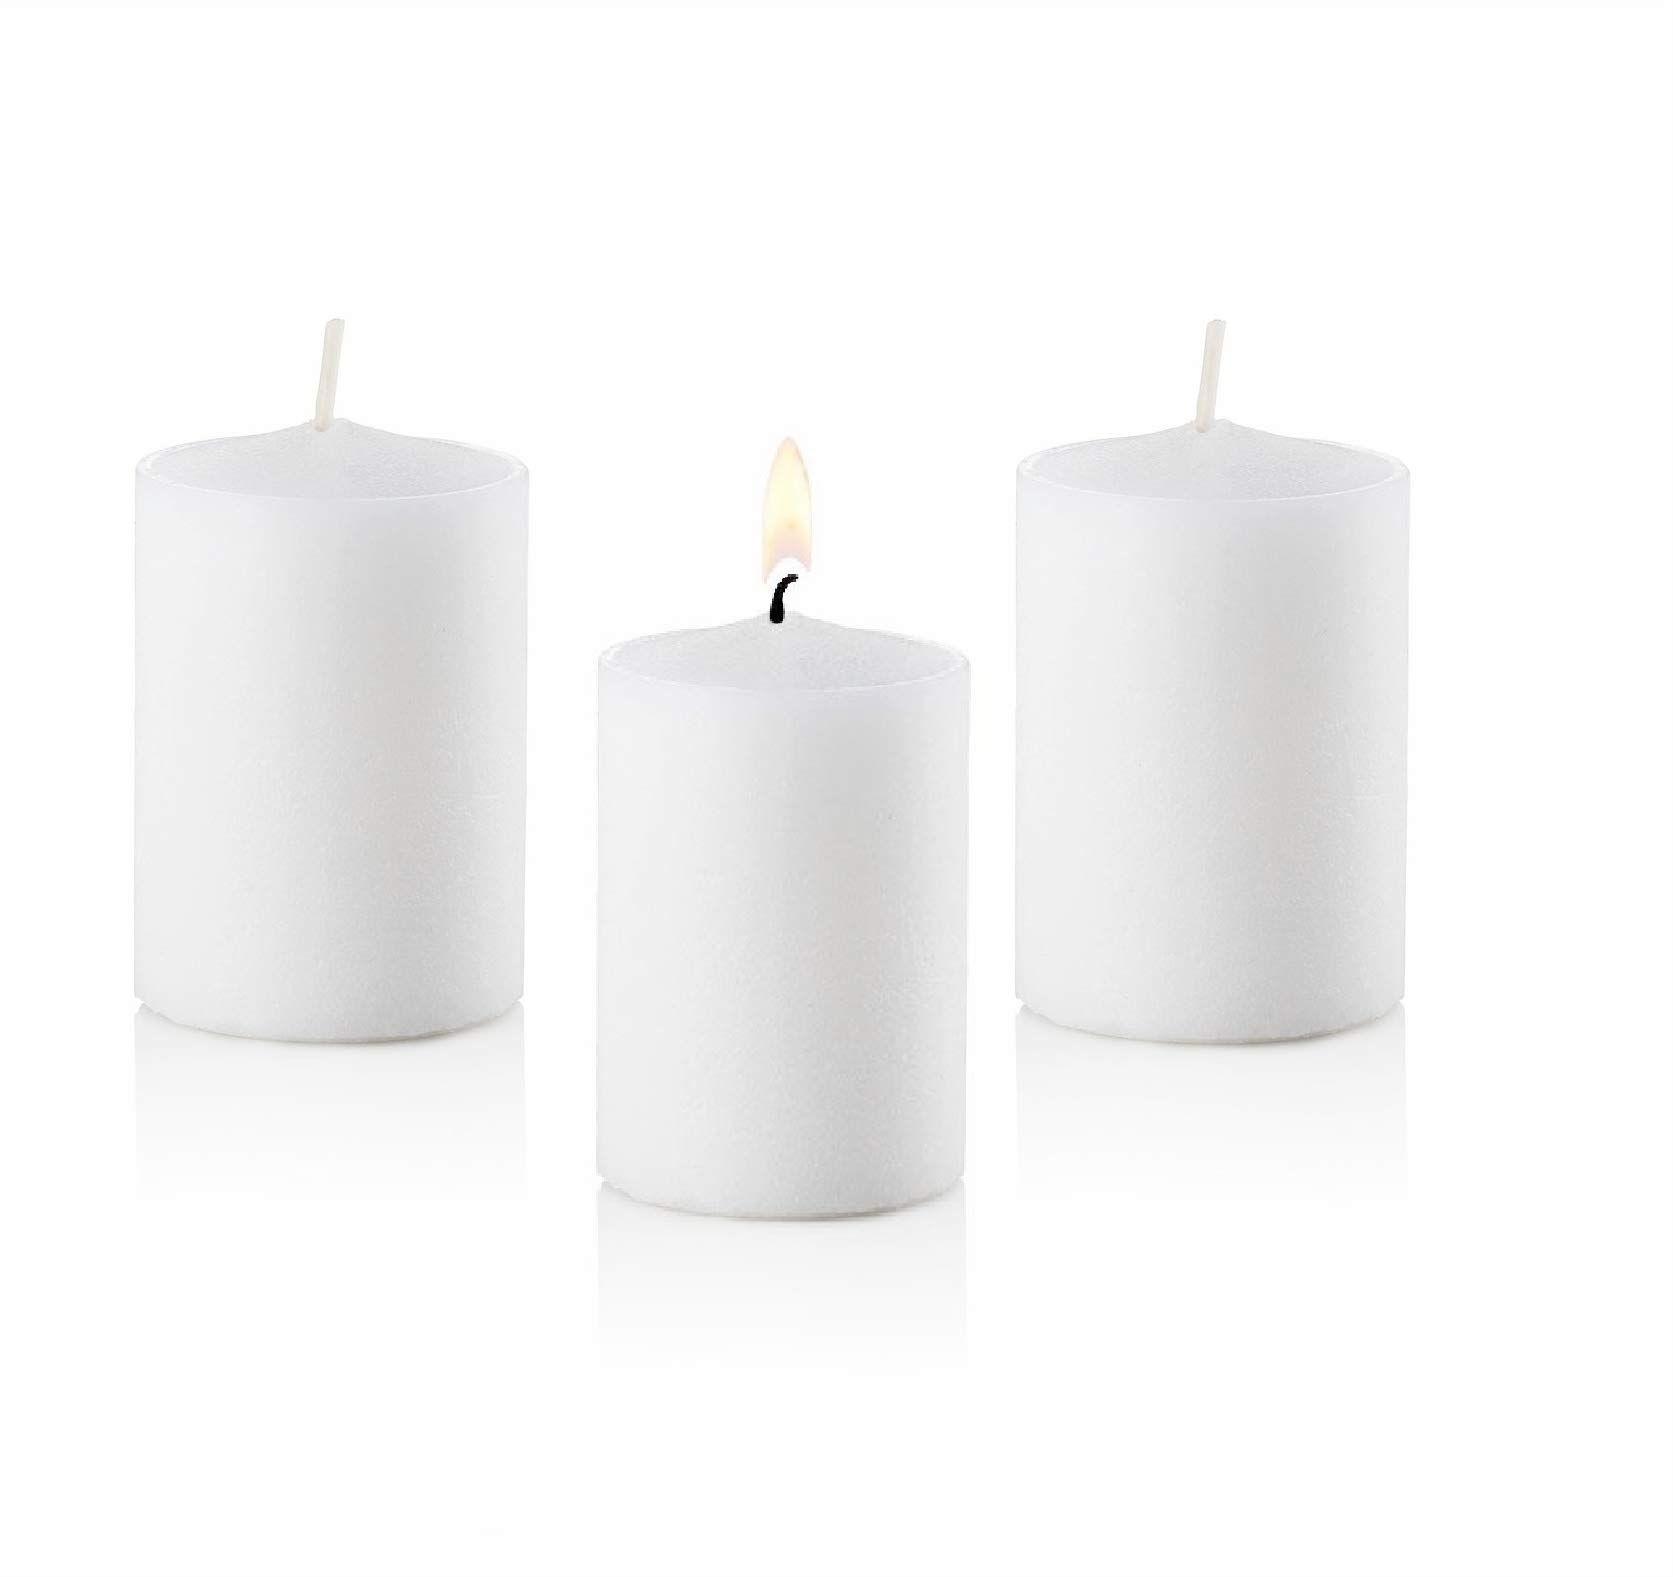 D'light Online 15 Hour Unscented White Emergency and Events Bulk Votive Candles (White, Set of 144) by D'light Online (Image #8)